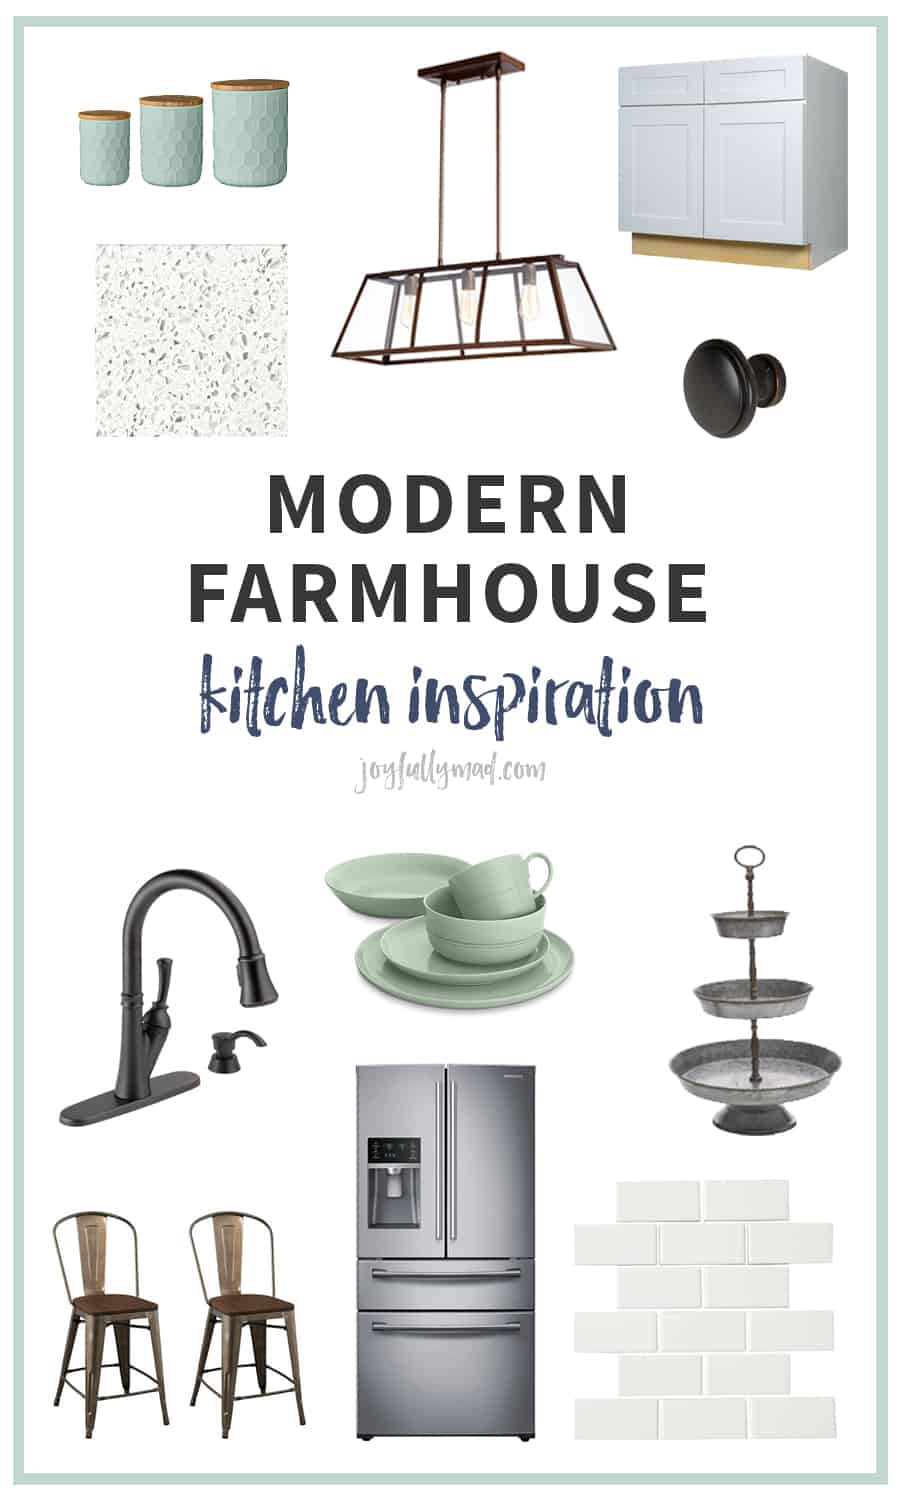 Planning your dream kitchen? Here's what inspired us when we built our dream modern farmhouse kitchen! White shaker cabinets and sparkly quartz plus oil rubbed bronze accents and hardware.